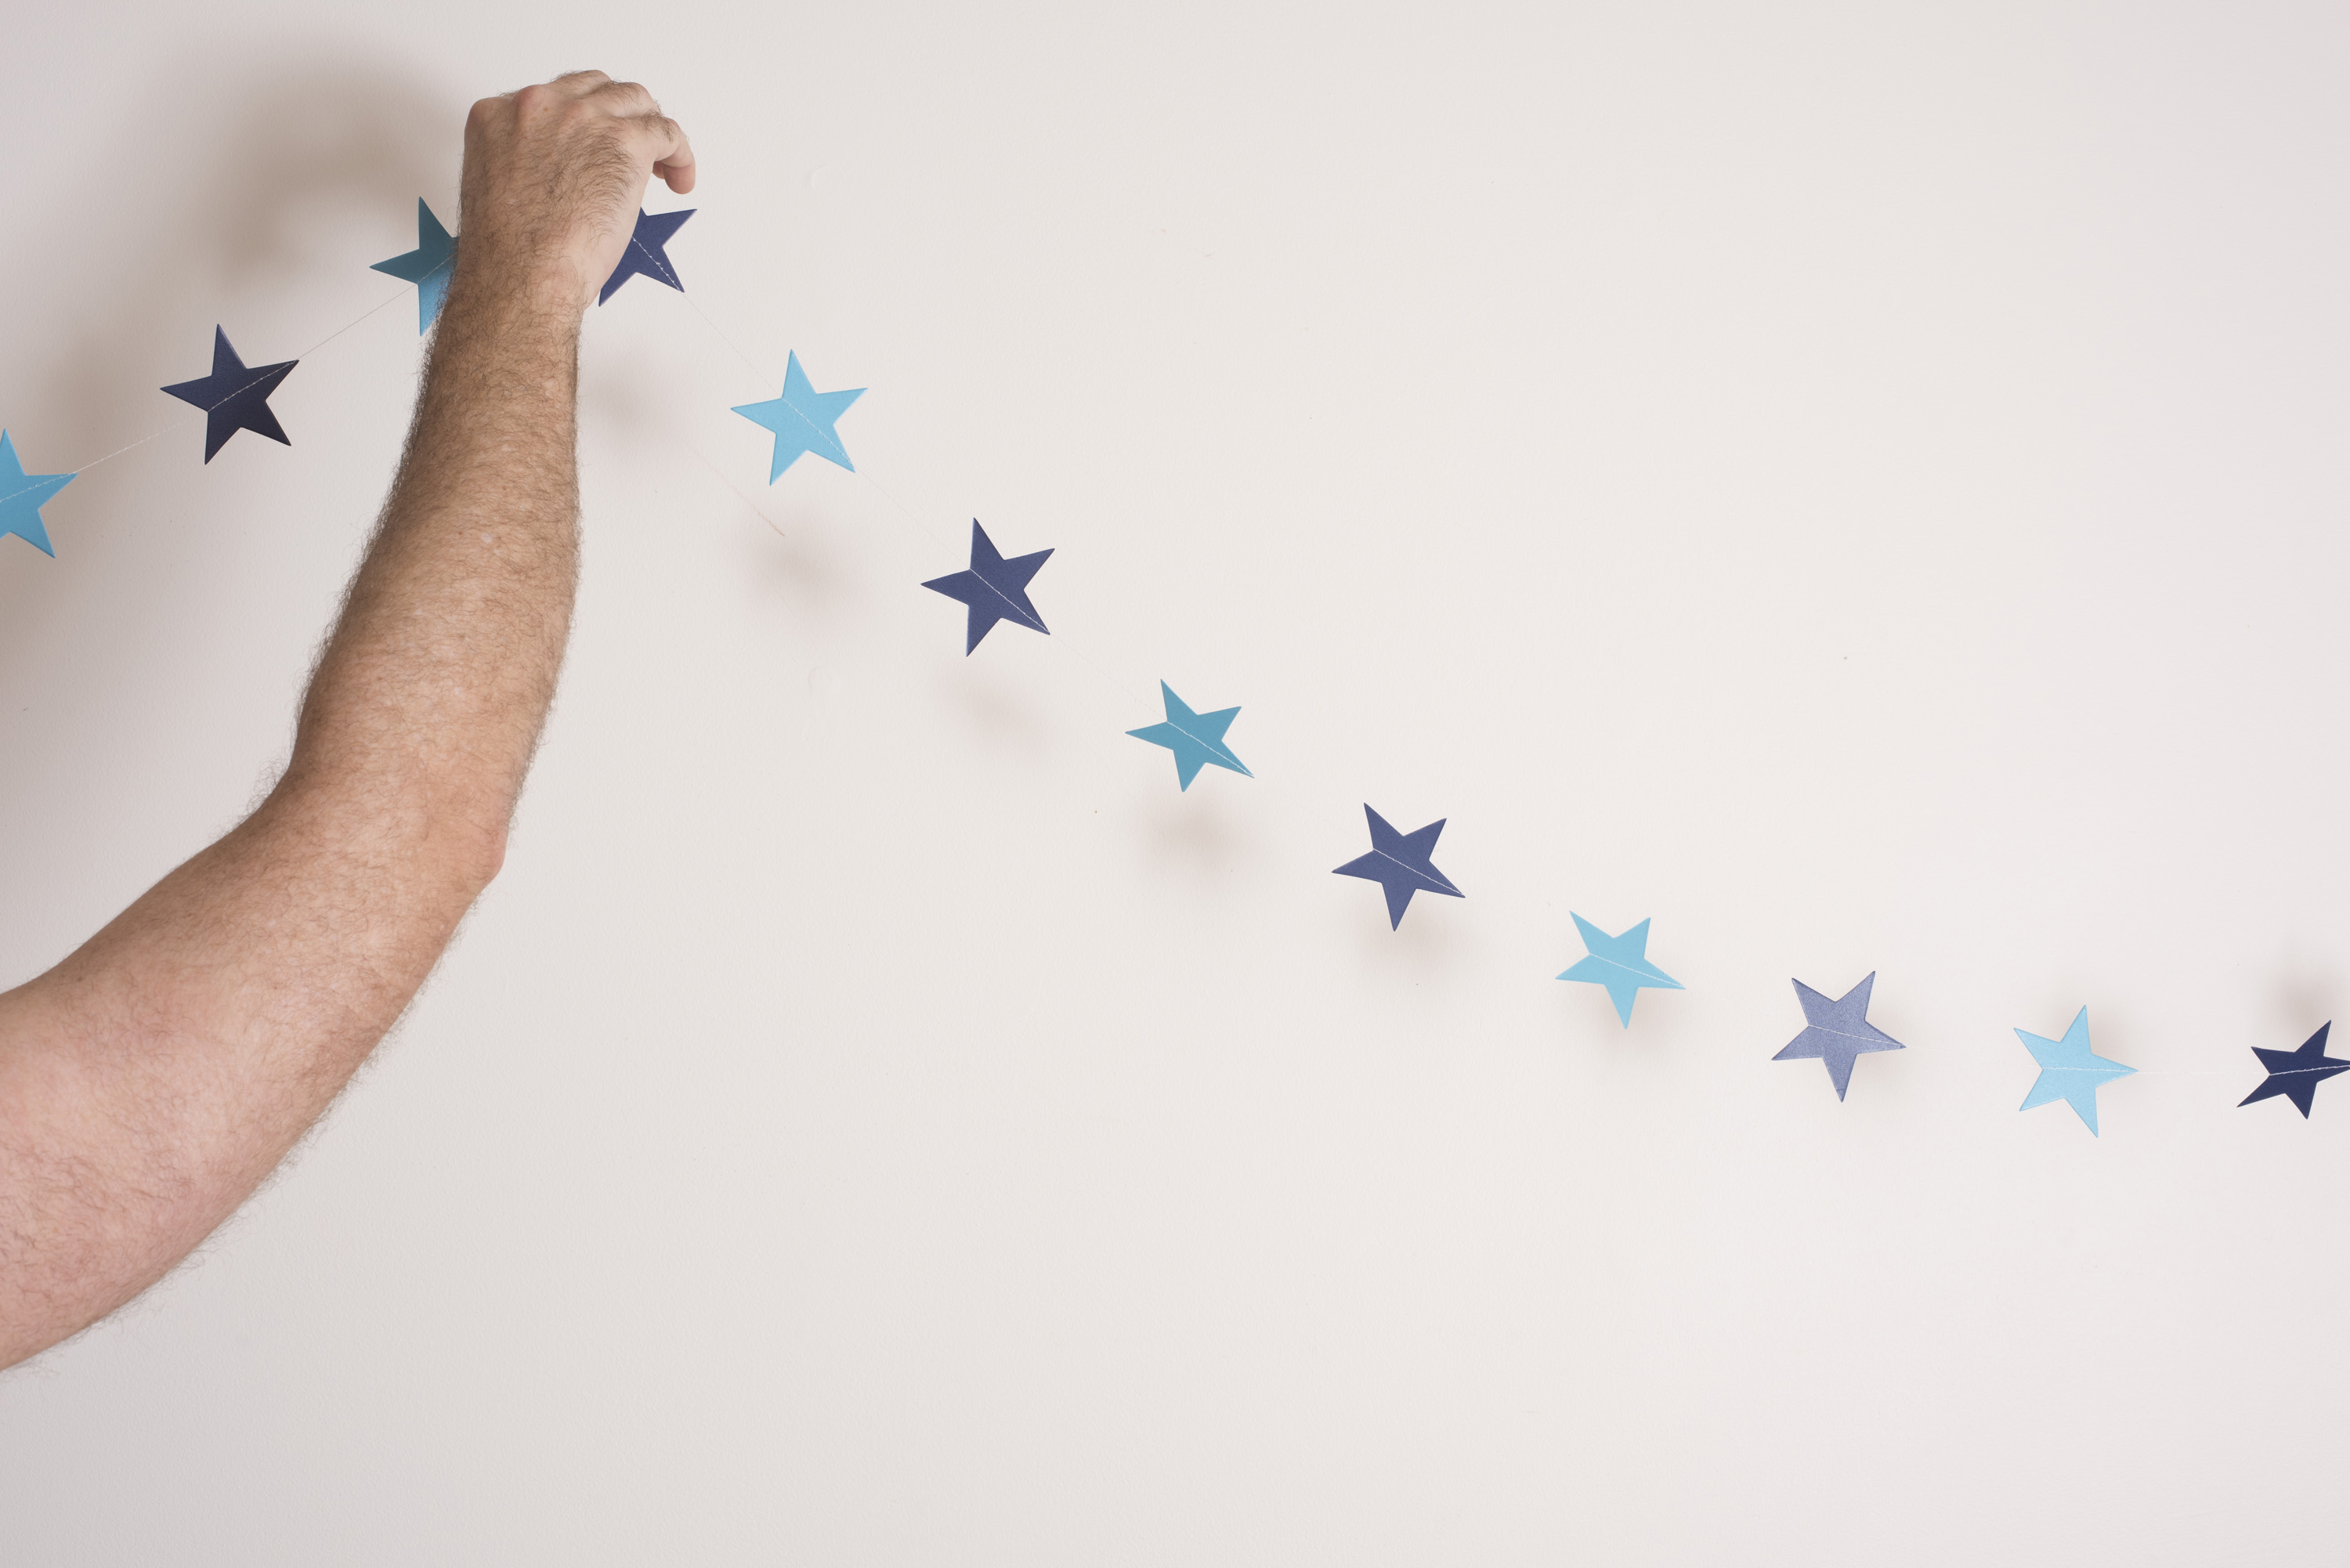 Man hanging decorative blue star bunting for Christmas at home against a white wall with copy space, close up of his bare arm